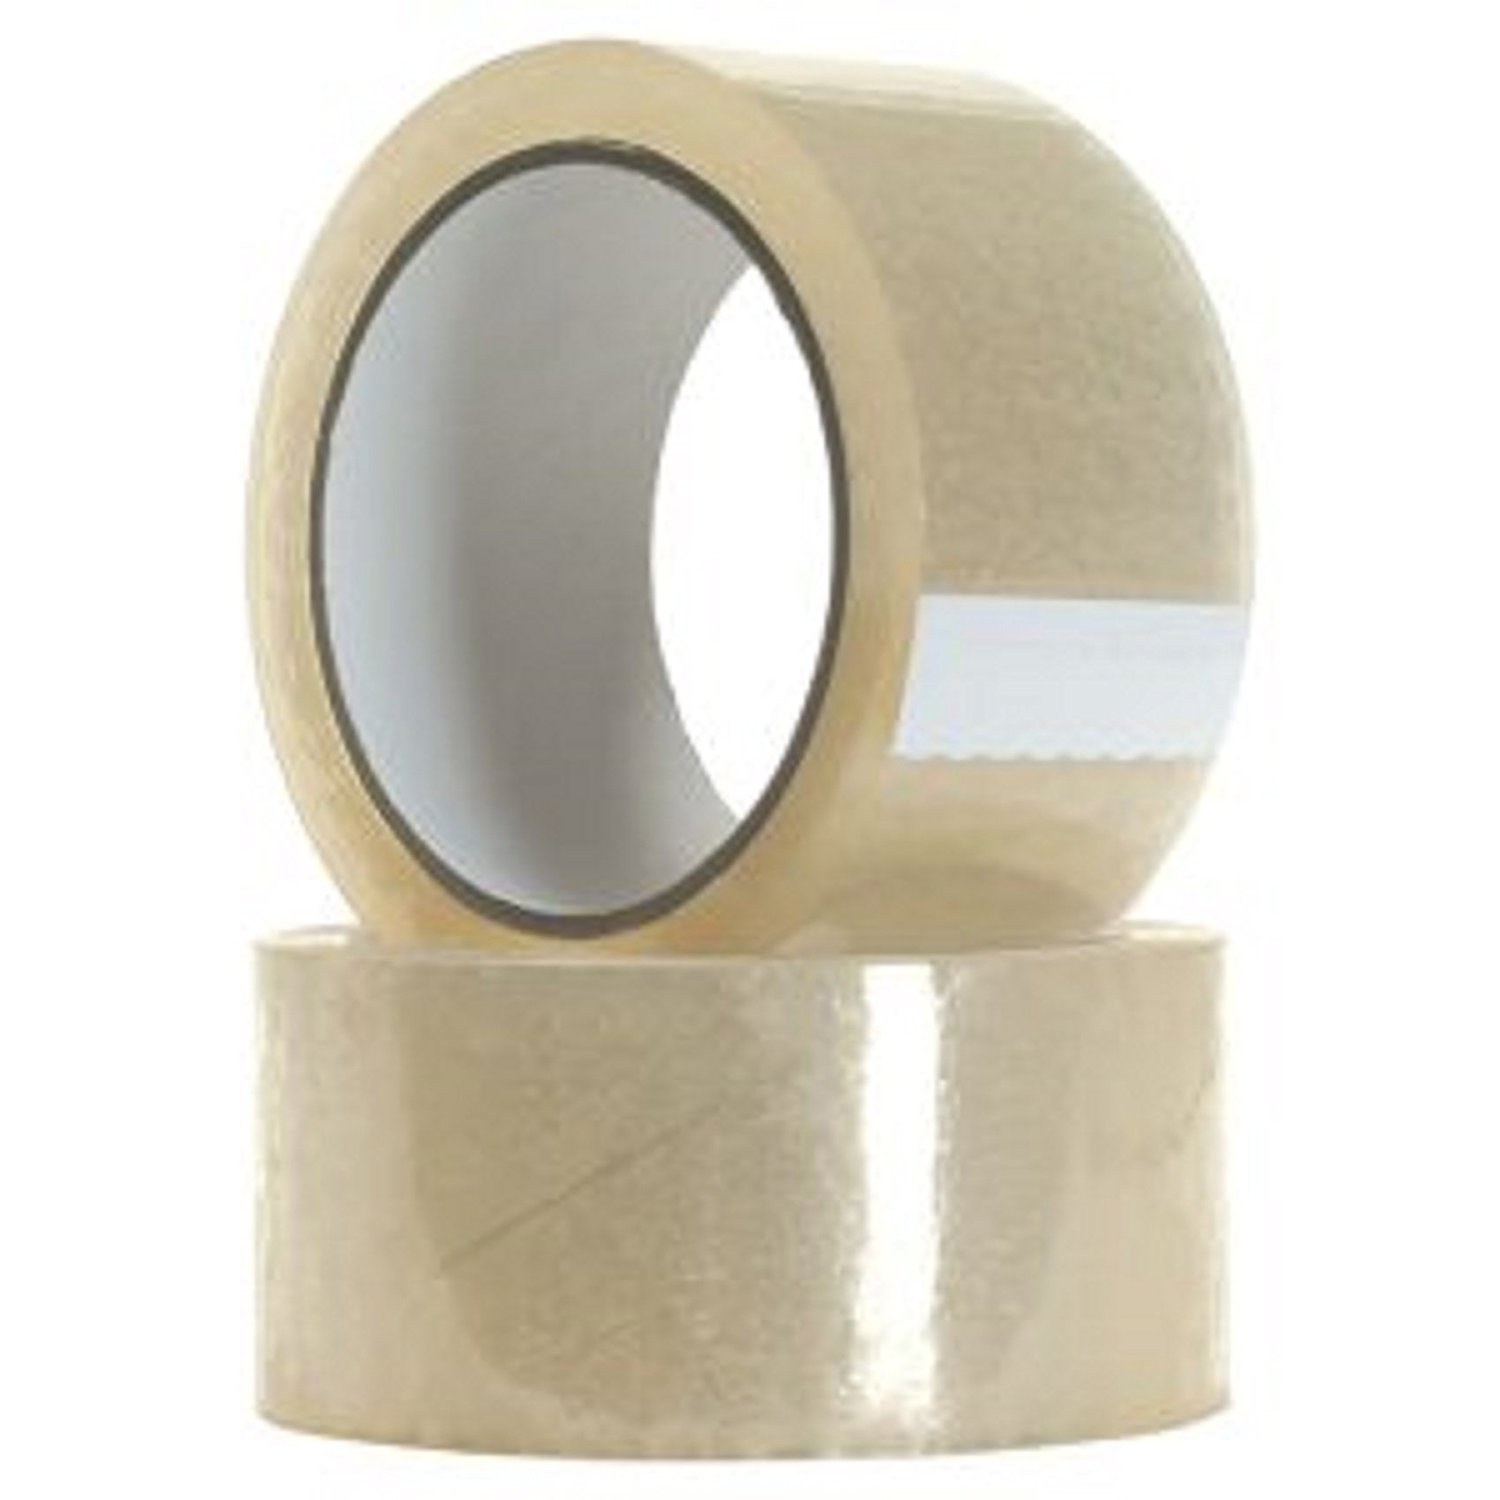 Extra Wide Clear Packing Tape, Pack of 2 Rolls, Extra Wide Extra Sticky Extra Value Packing Tape Roll Refill, 2.83 Inch Wide X 109.3 Yard long each Roll Great for moving boxes storage and shipping